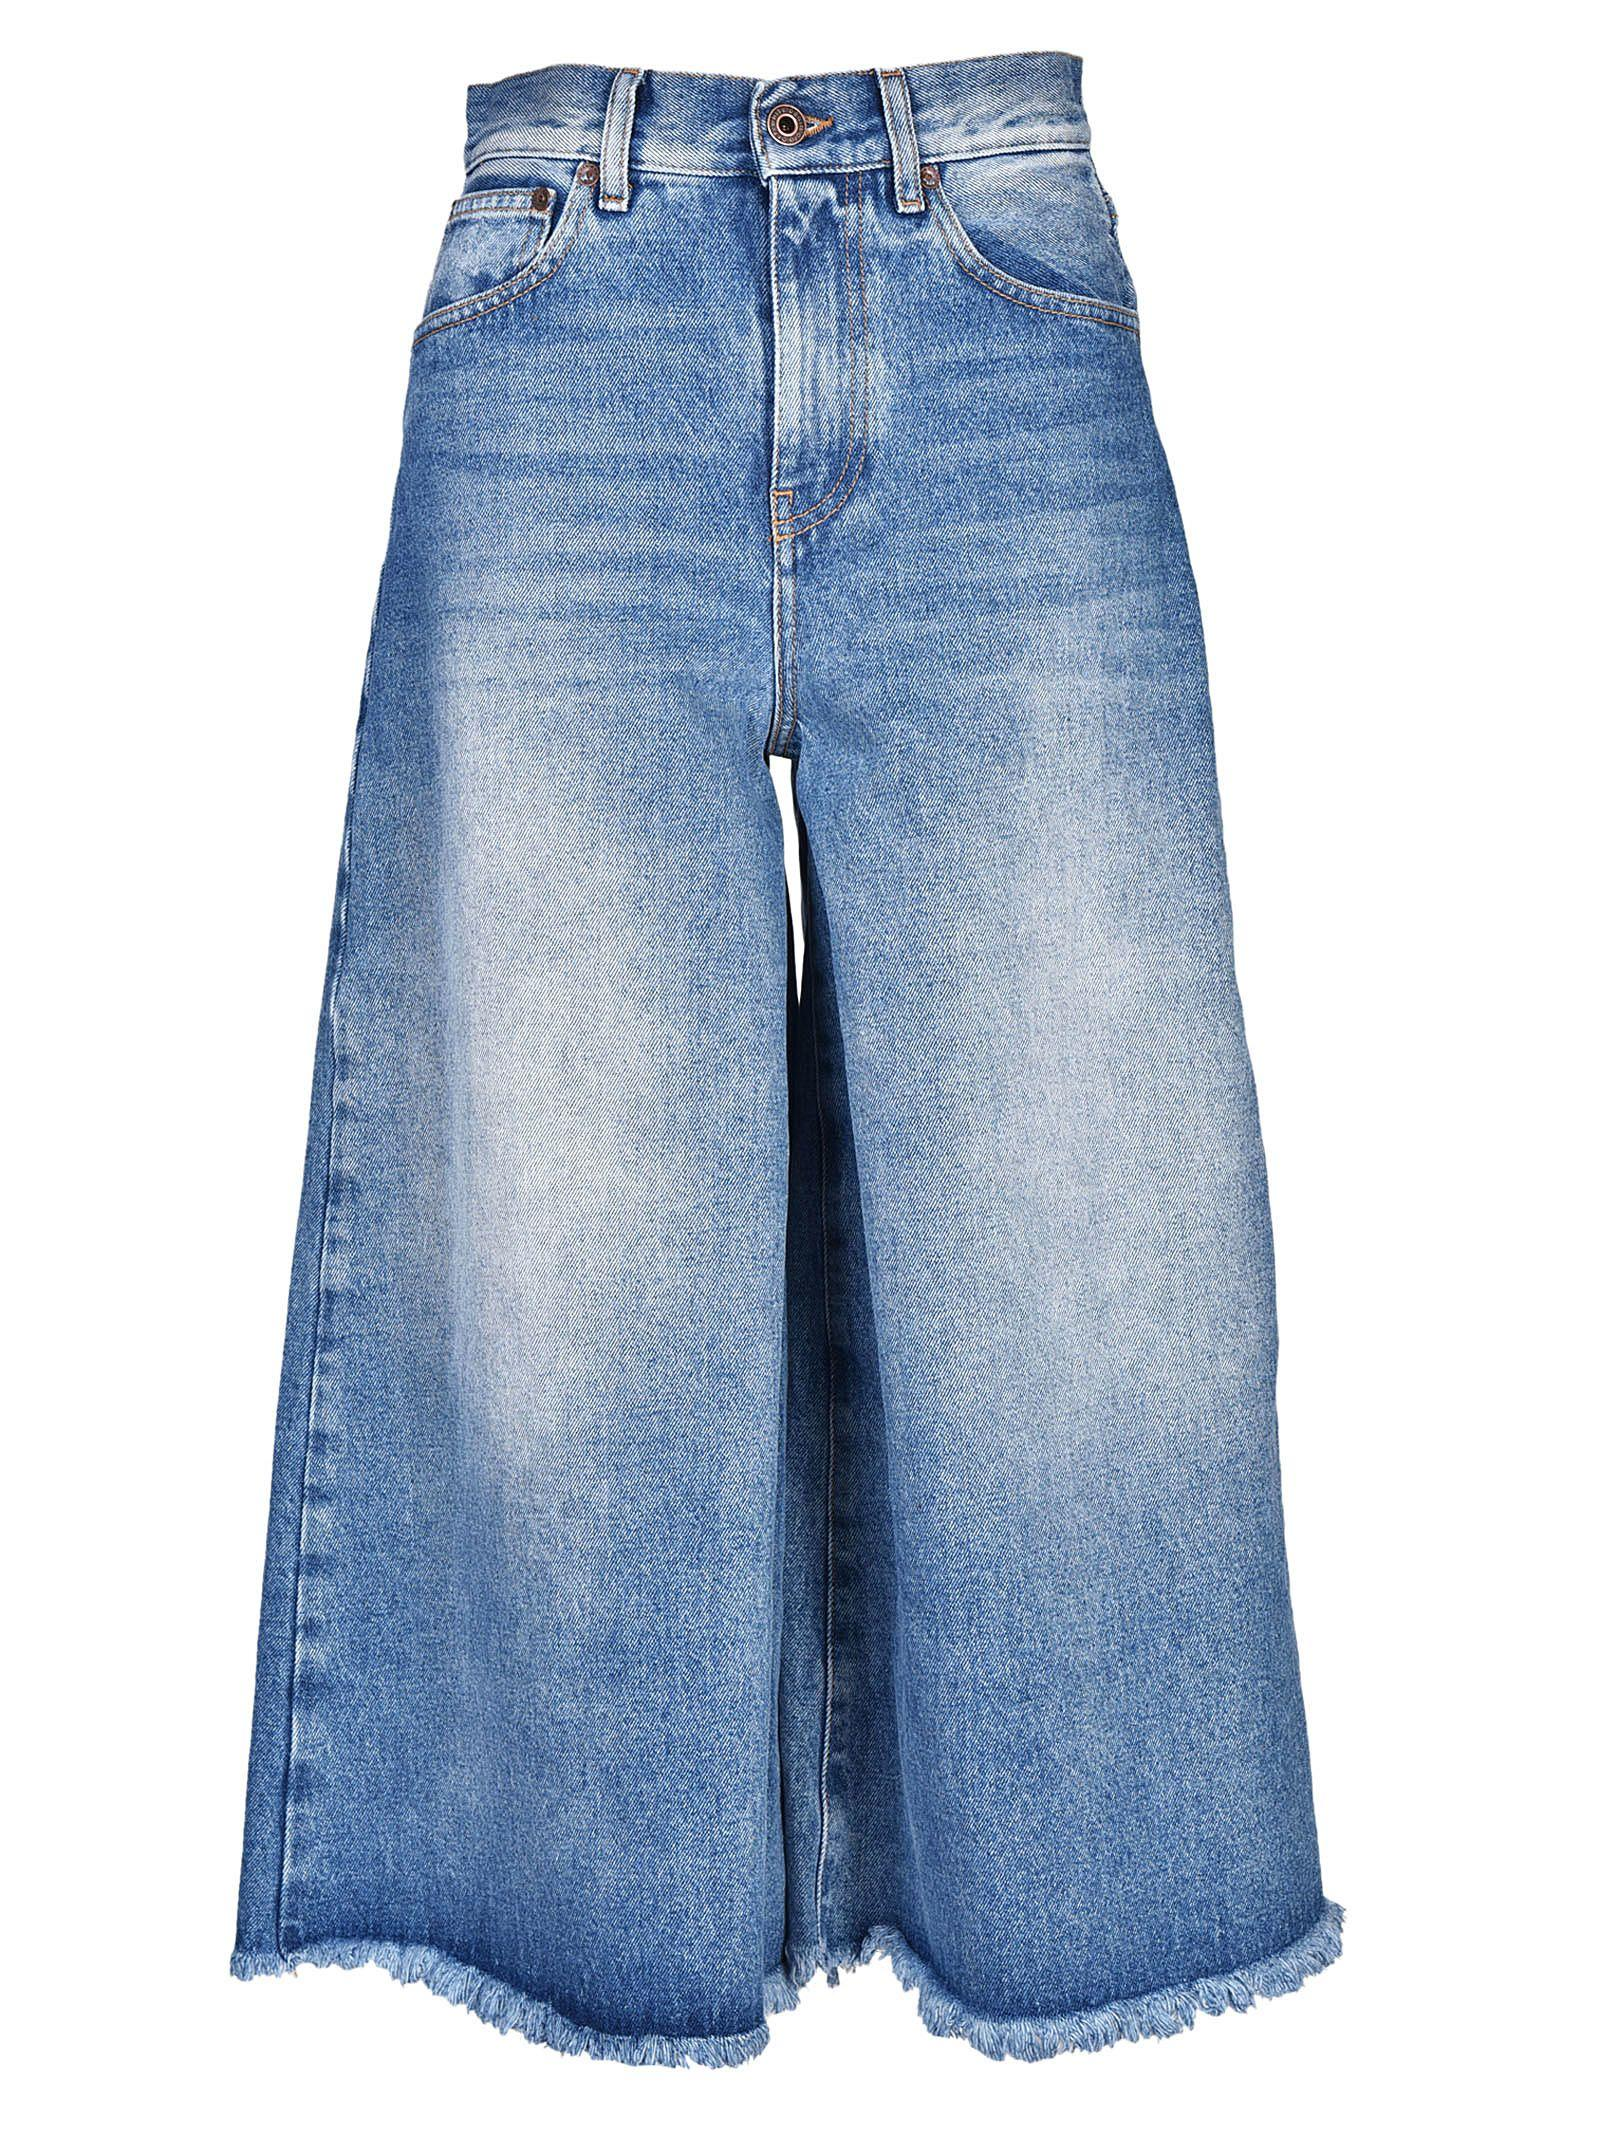 Off-White Flared Cropped Jeans